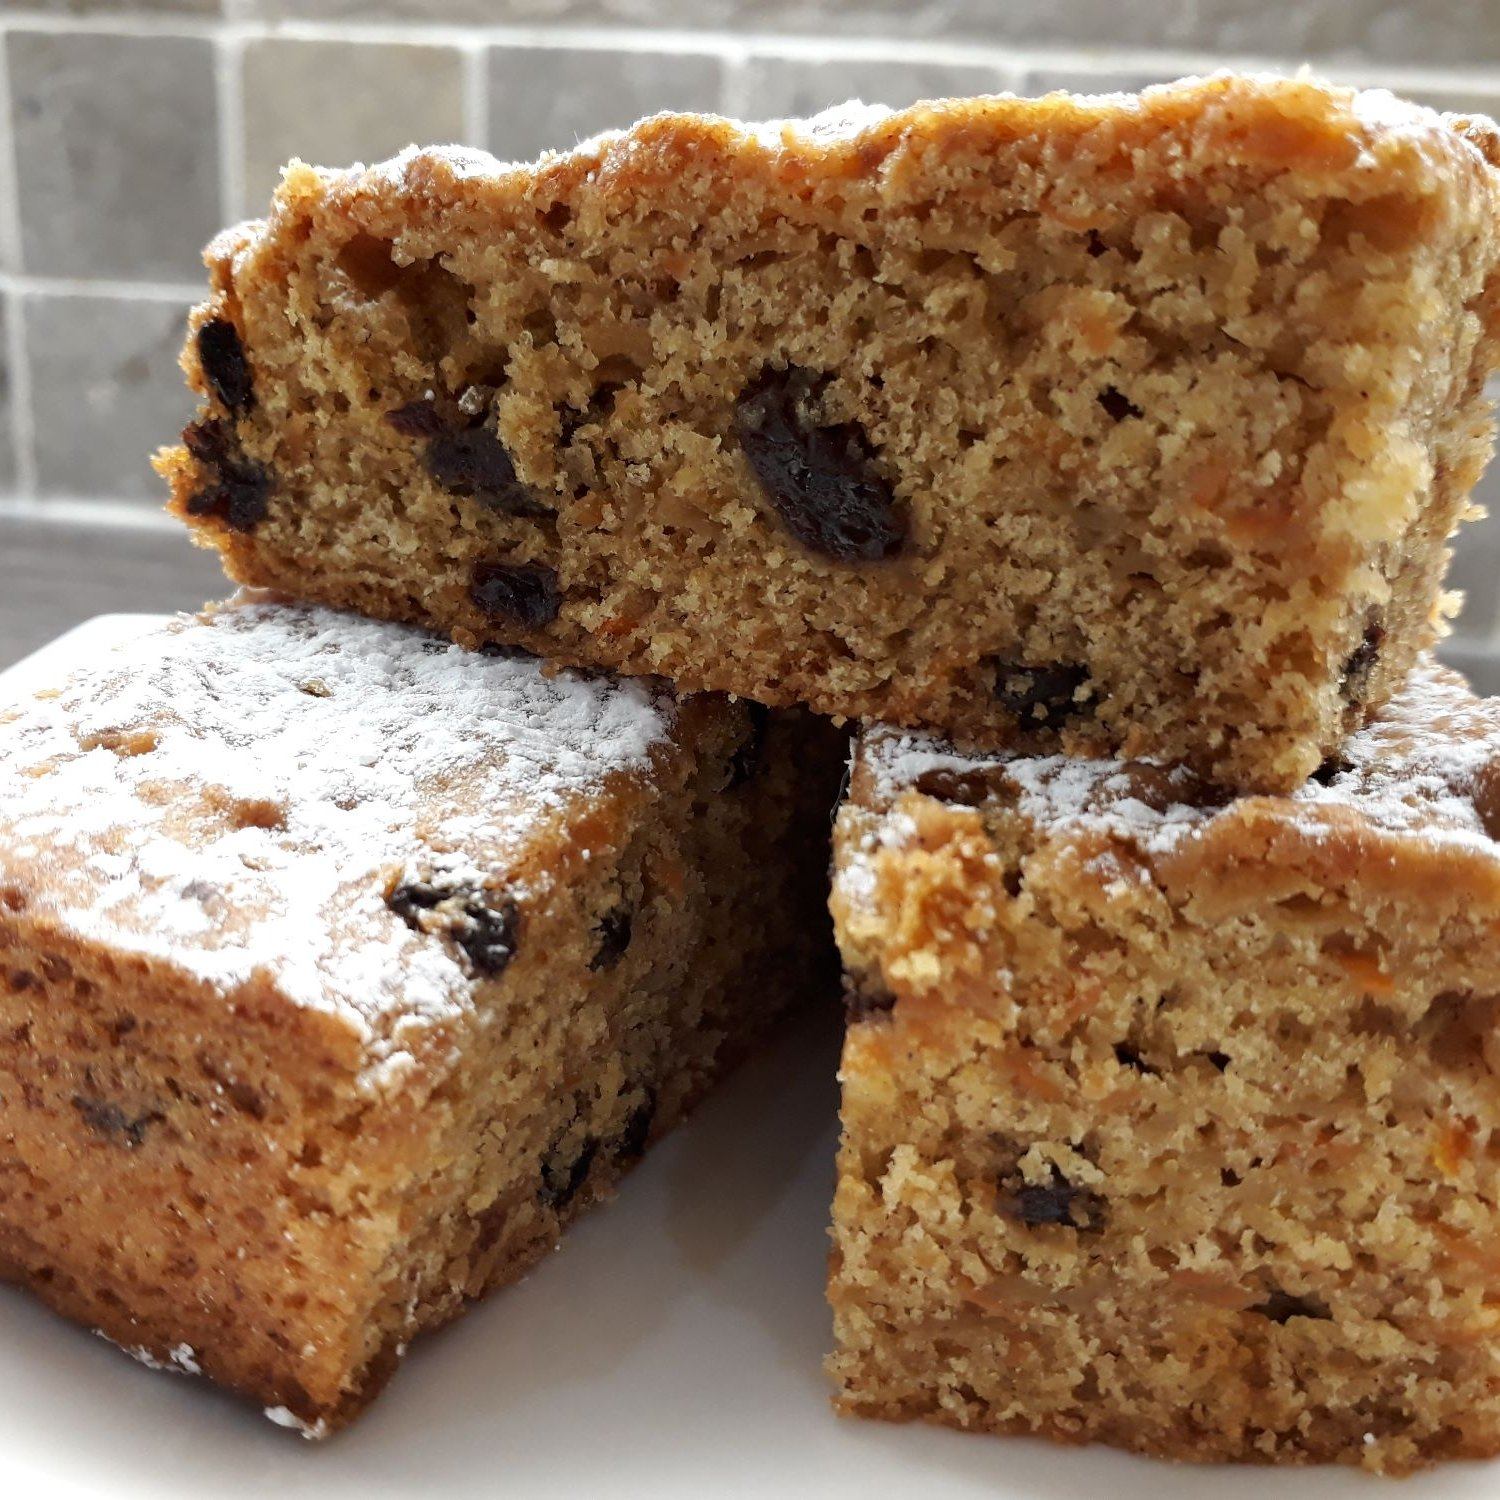 Carrot Apple and Raisin Cake suitable for vegsns